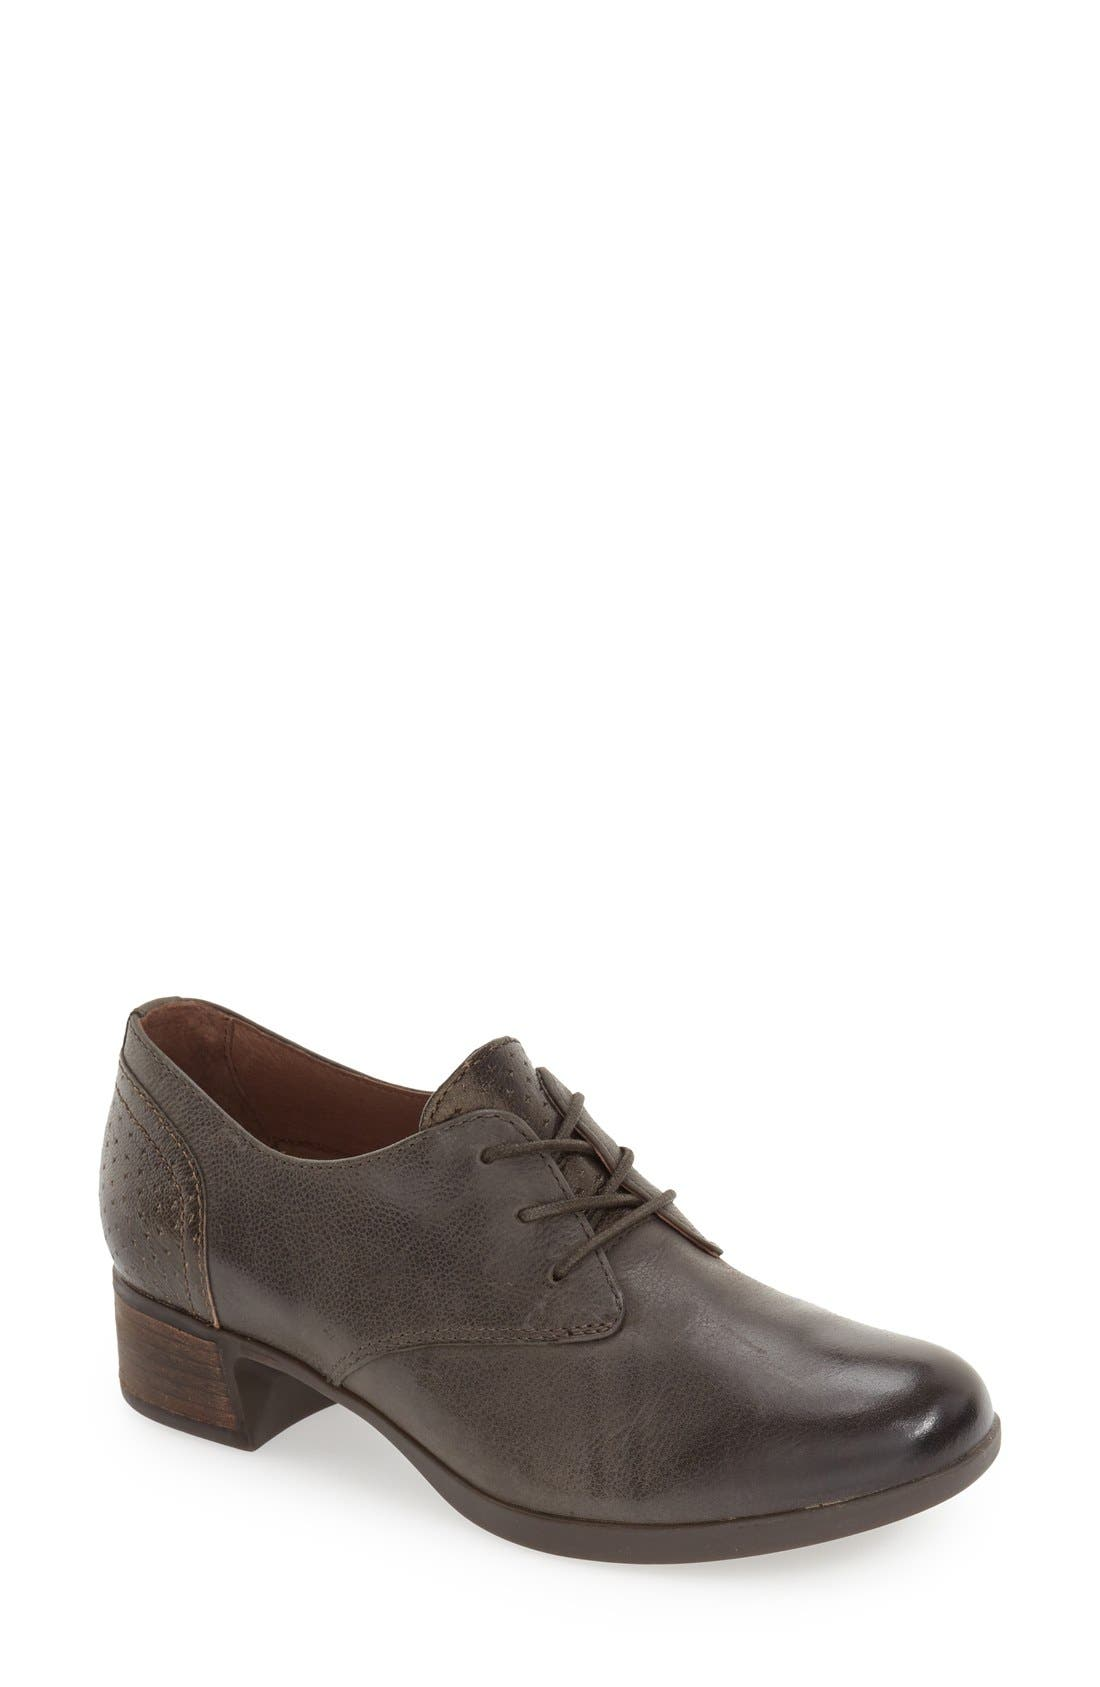 'Louise' Round Toe Derby,                         Main,                         color, Stone Burnished Leather